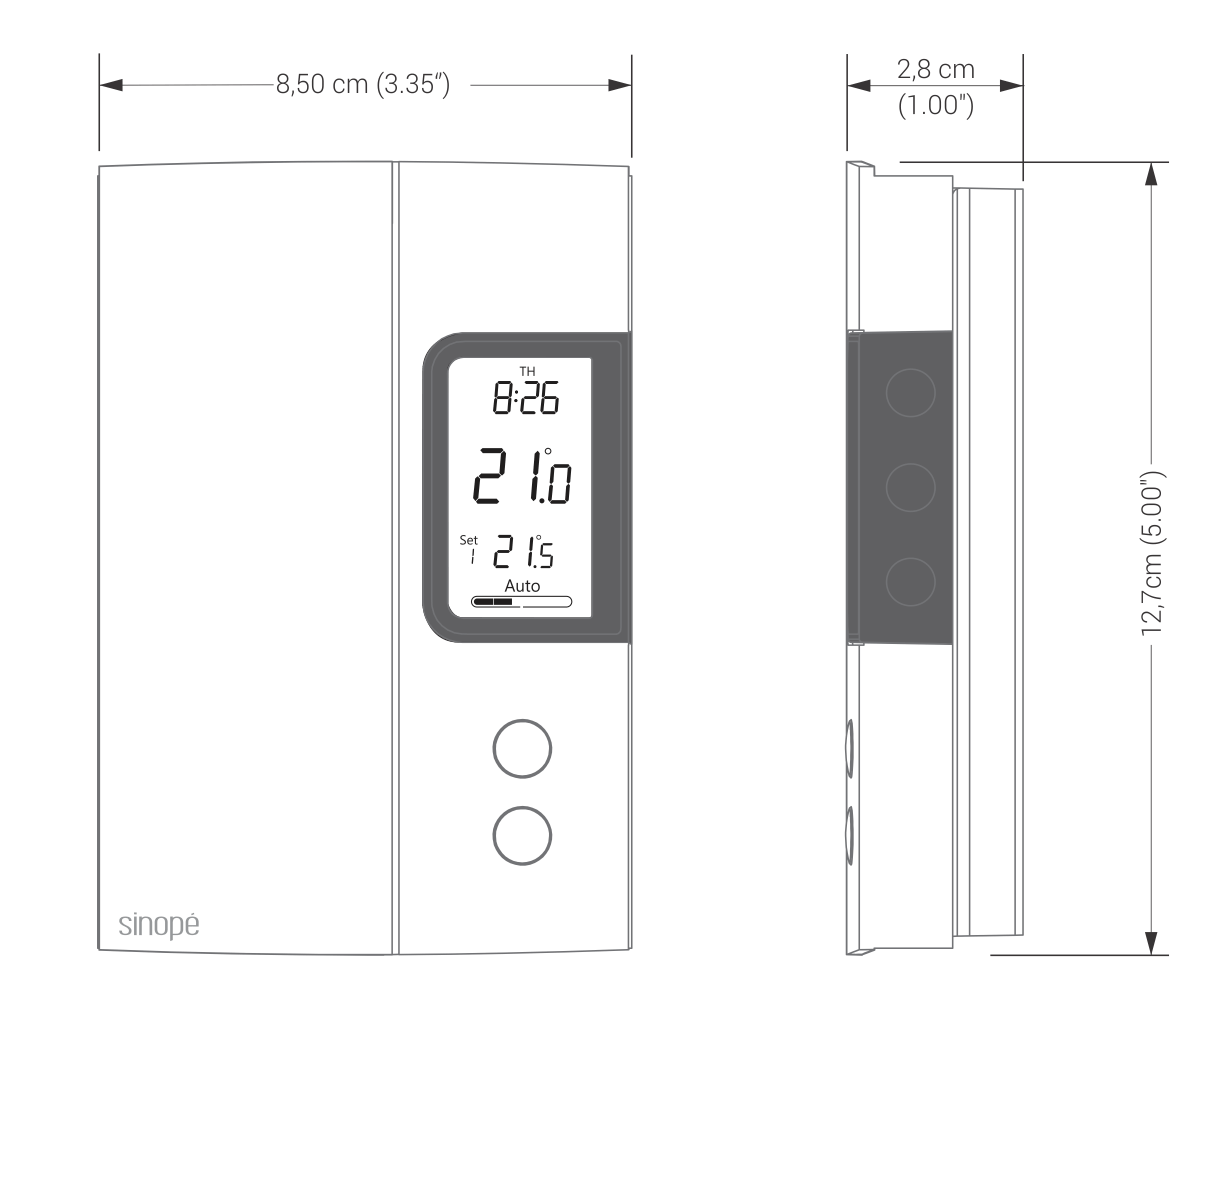 Honeywell Th6220d1002 Schematic Wiring Diagrams Thermostat Th5110d1022 Diagram Focus Pro 6000 Home Manual Pdf